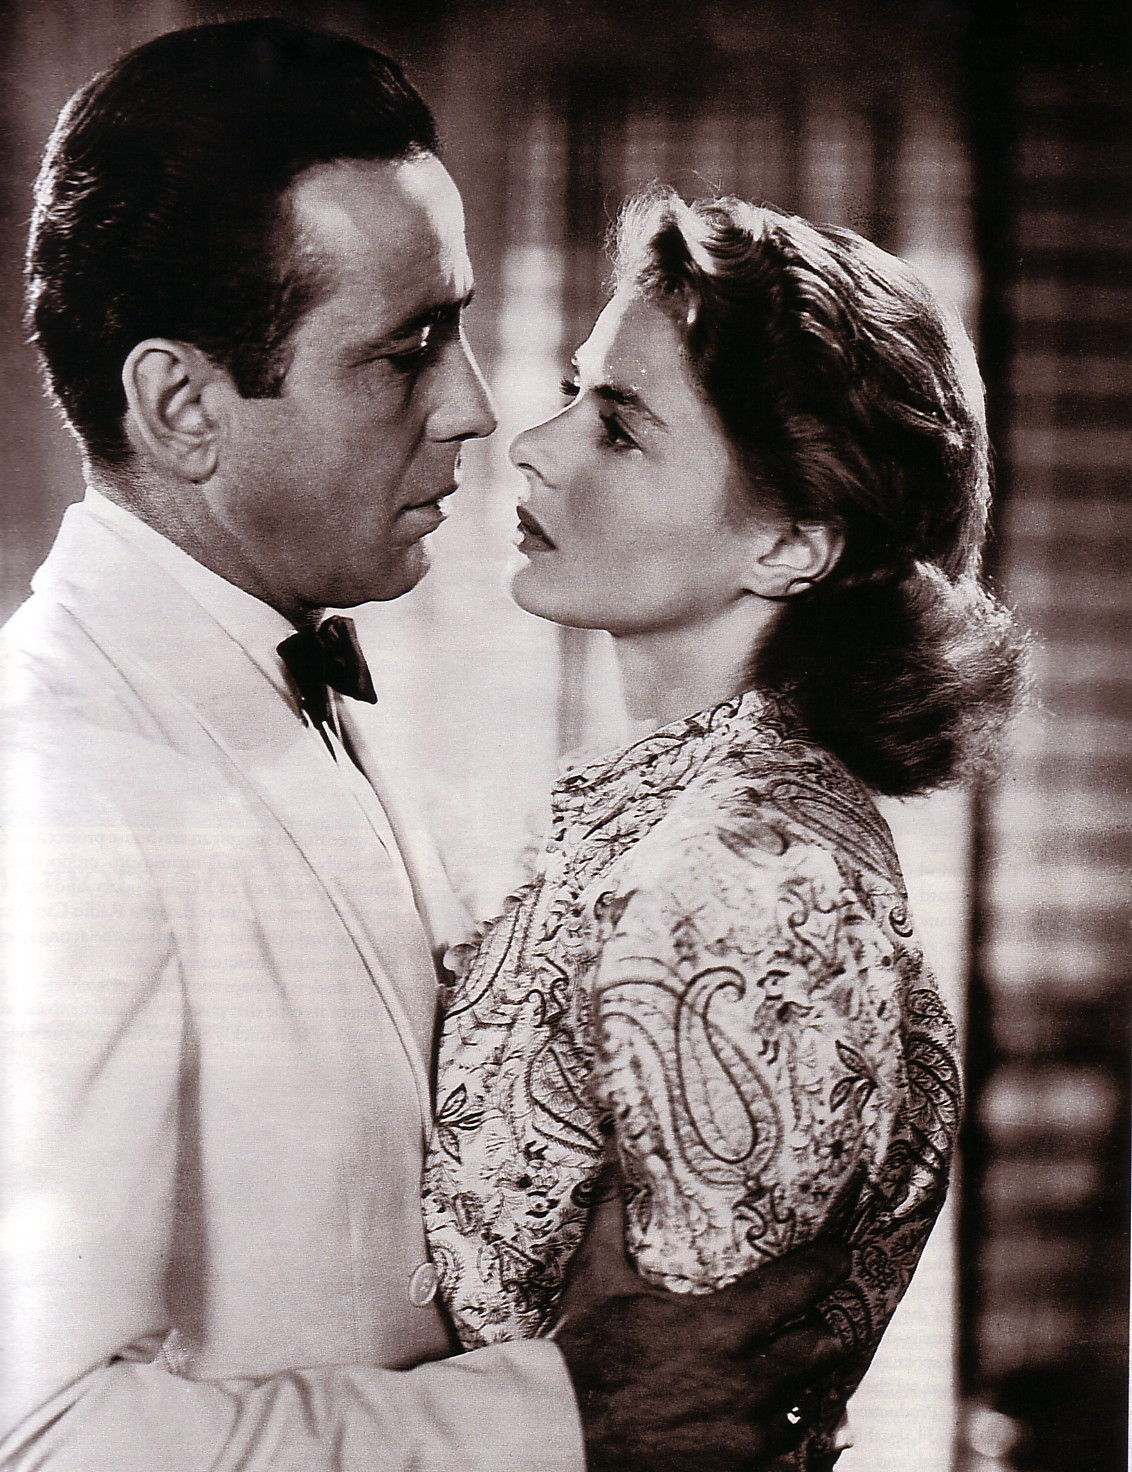 Casablanca courtesy of Park Circus/Warner Bros